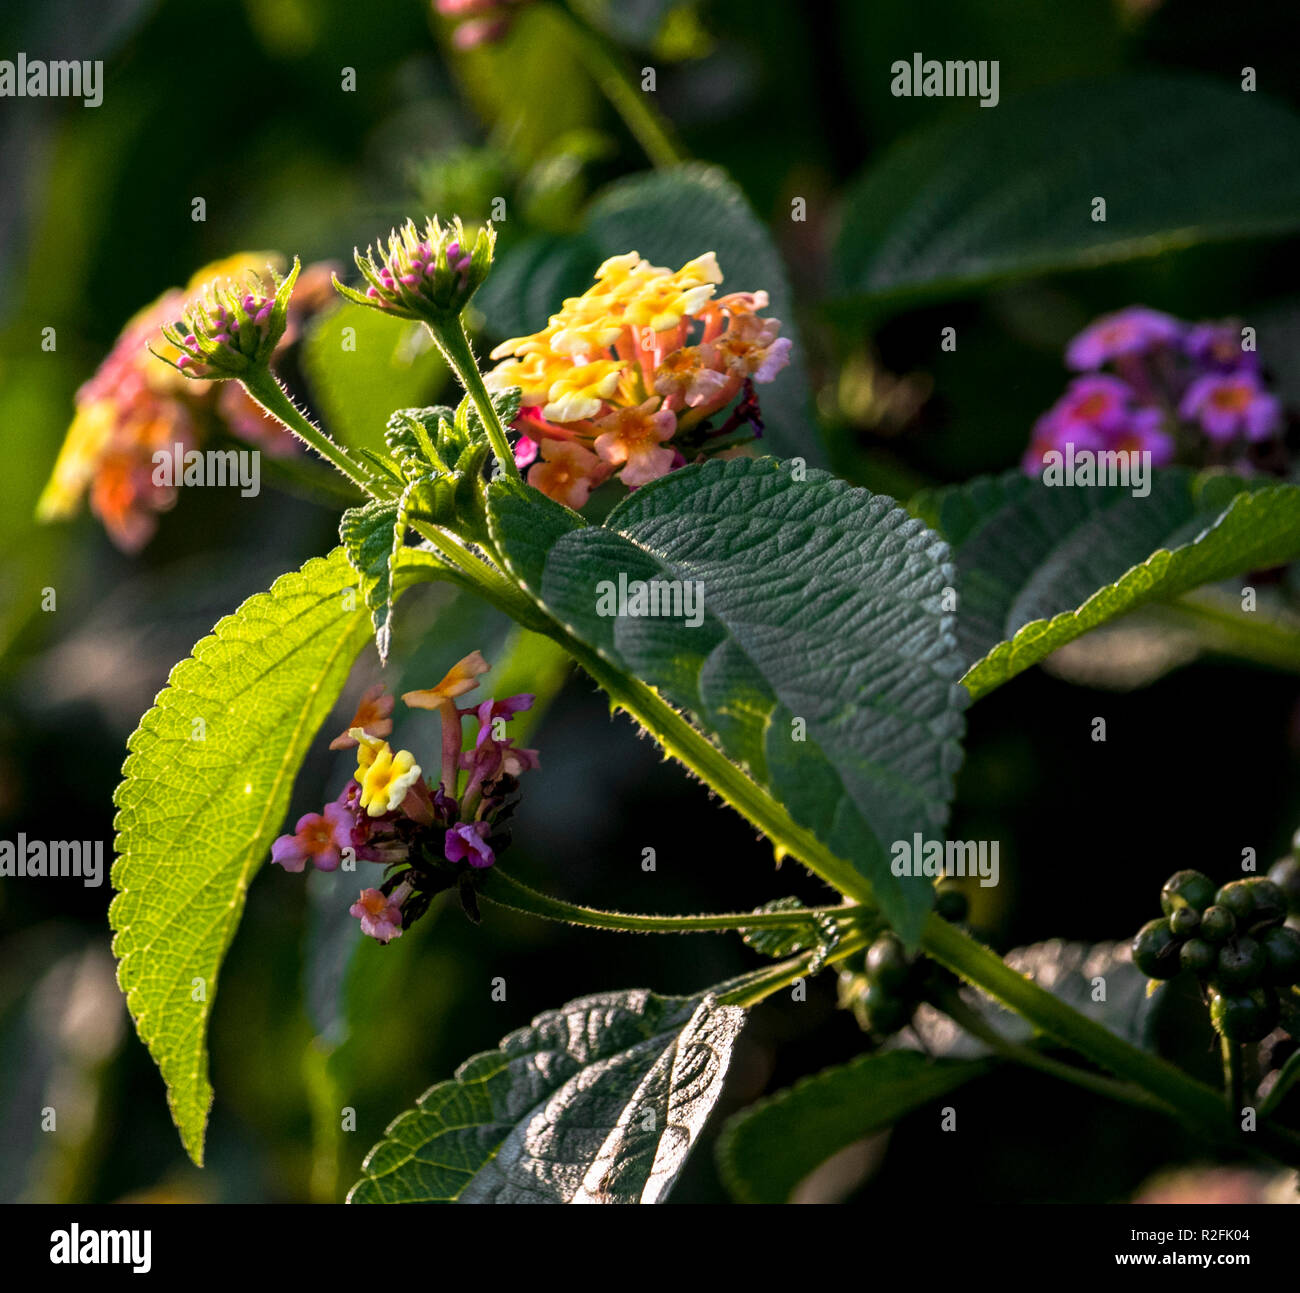 Flowers for greeting card.Naturally grown flowers in garden - Stock Image